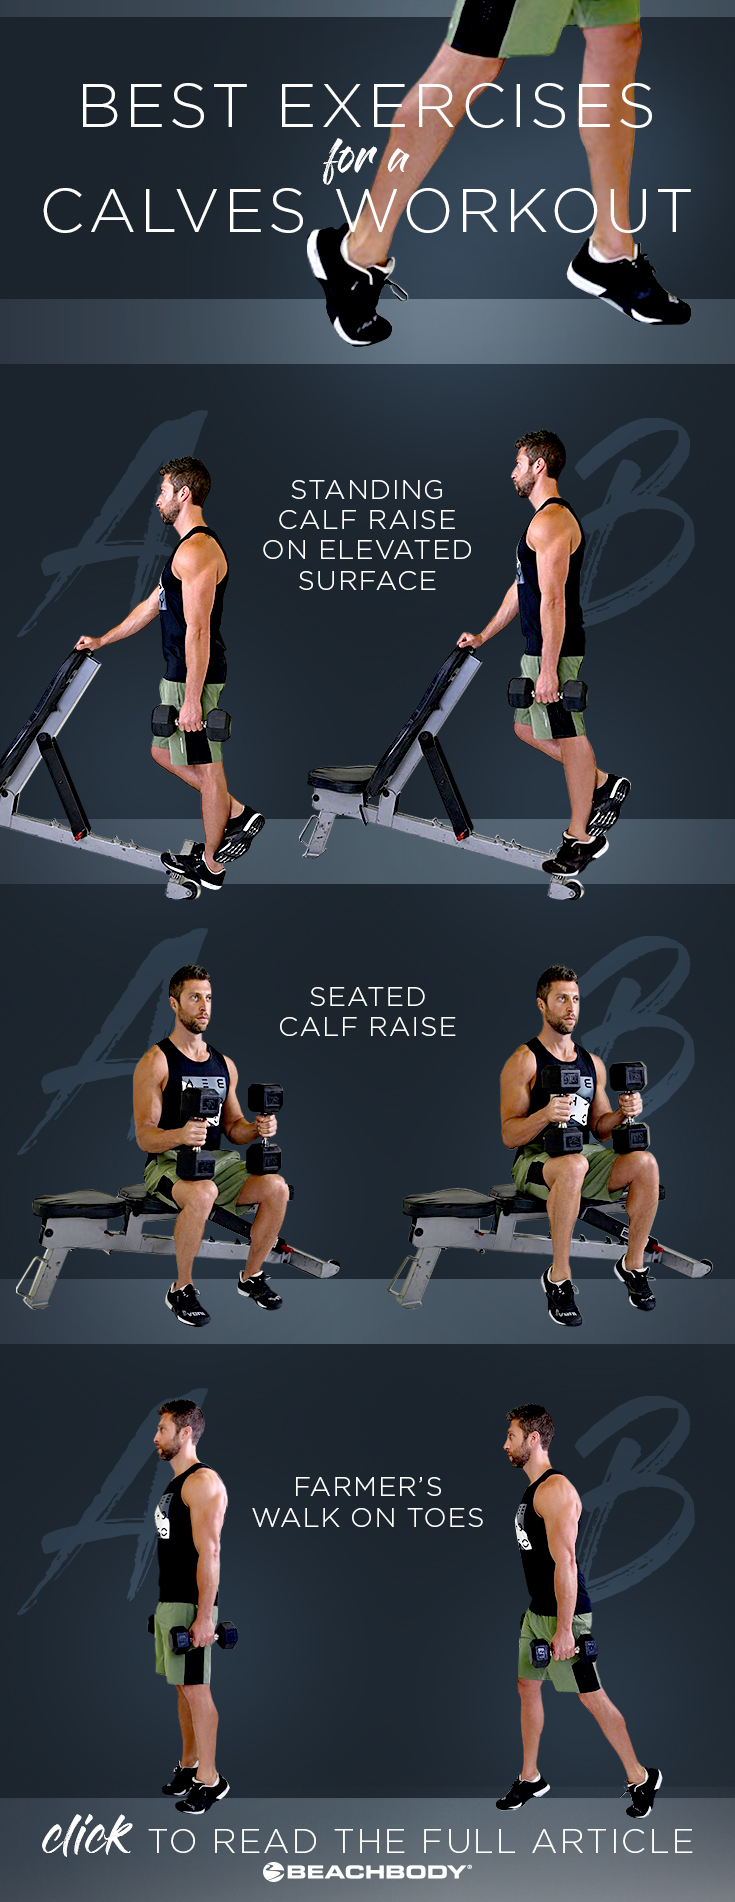 Start building bigger calf muscles with this calves workout at home. The list of exercises and stretches will help you get on your way to building stronger, more defined calf muscles.